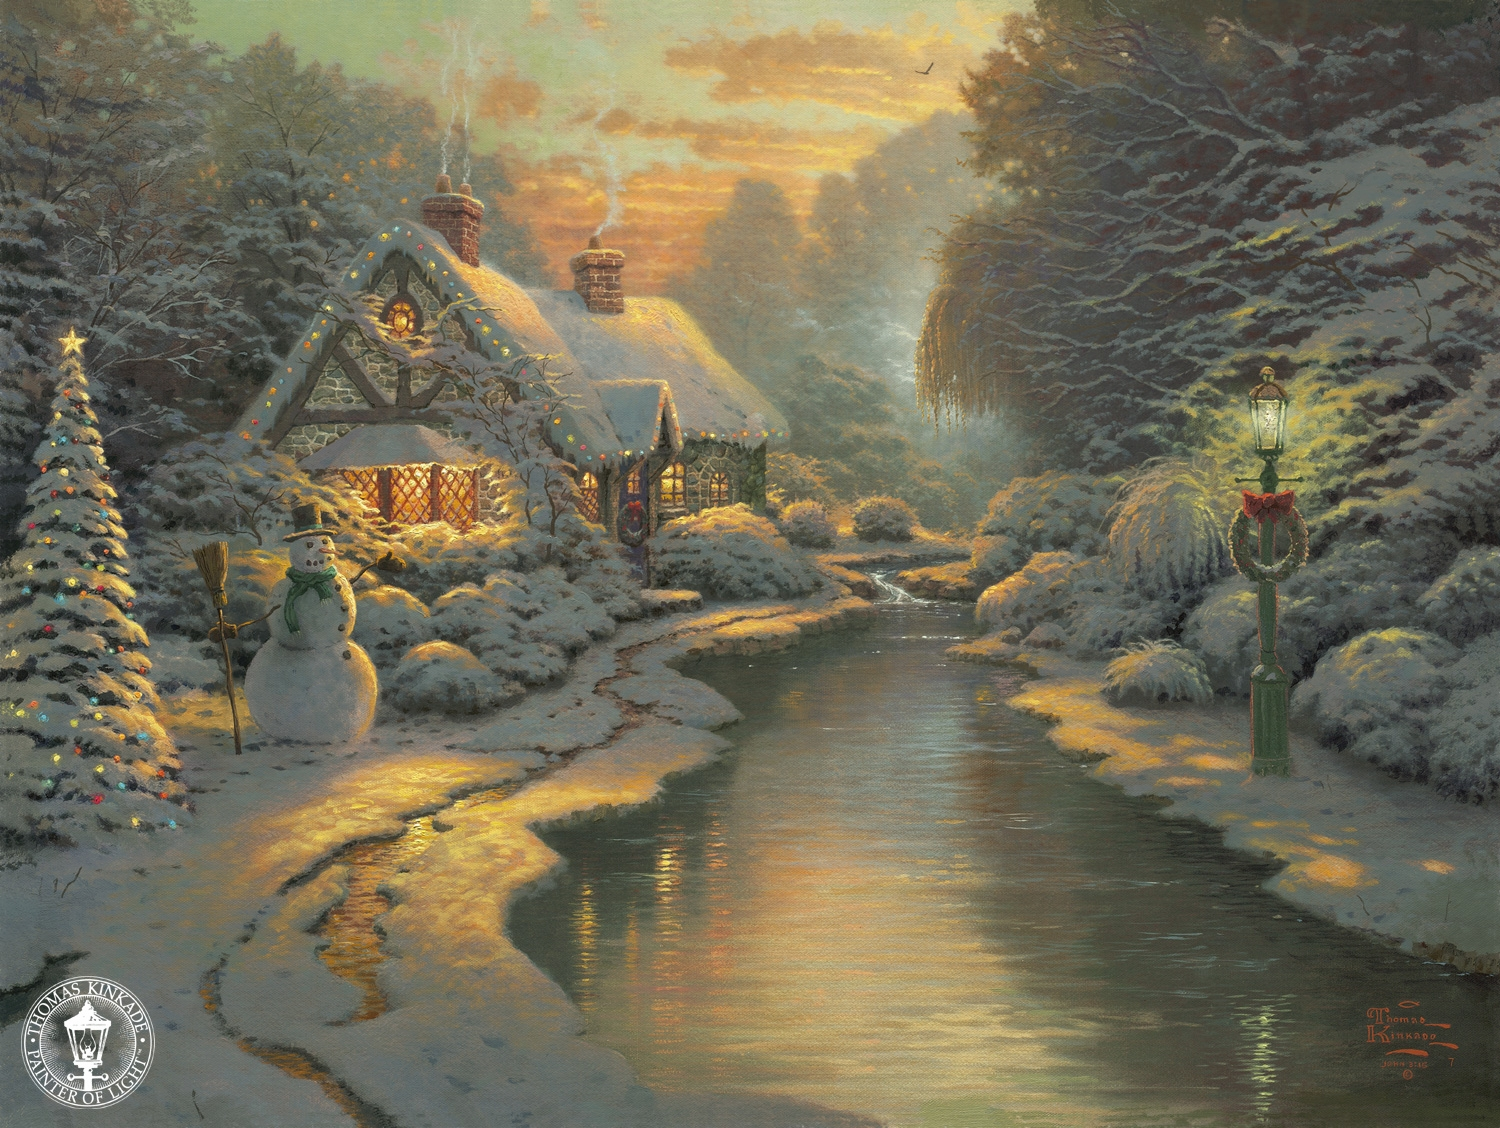 Thomas Kinkade Signed and Numbered Limited Edition Print and Hand ...